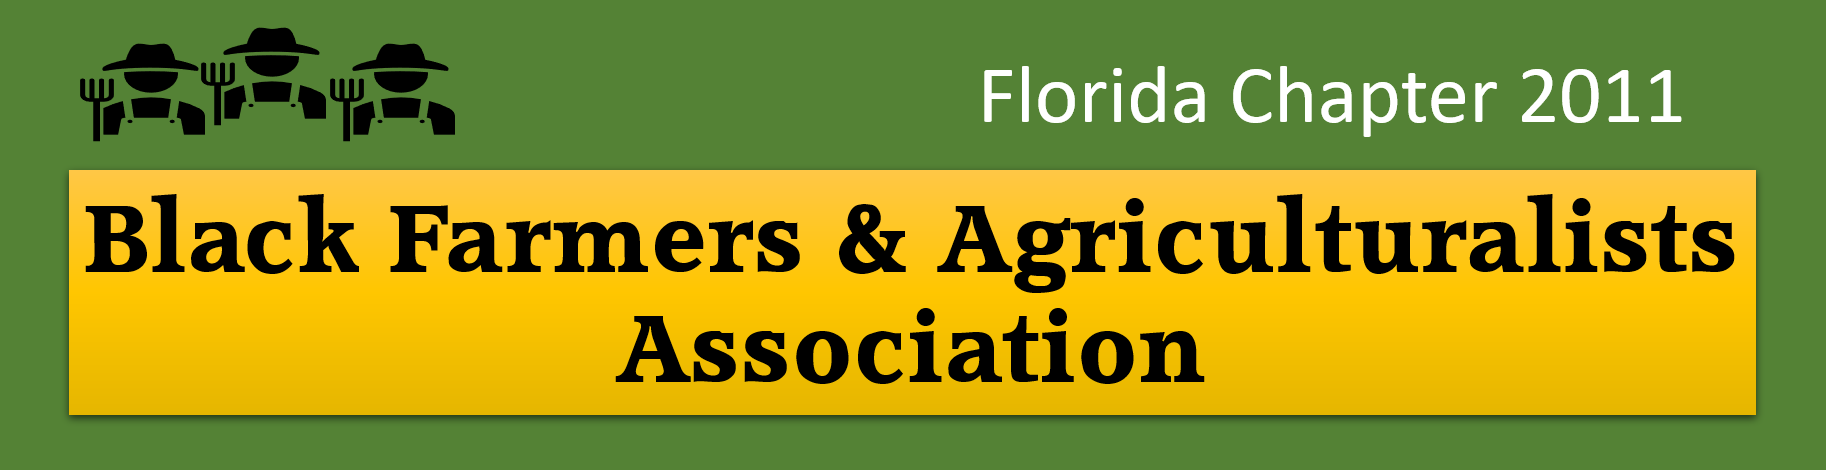 Black Farmers and Agriculturalists Association of Florida